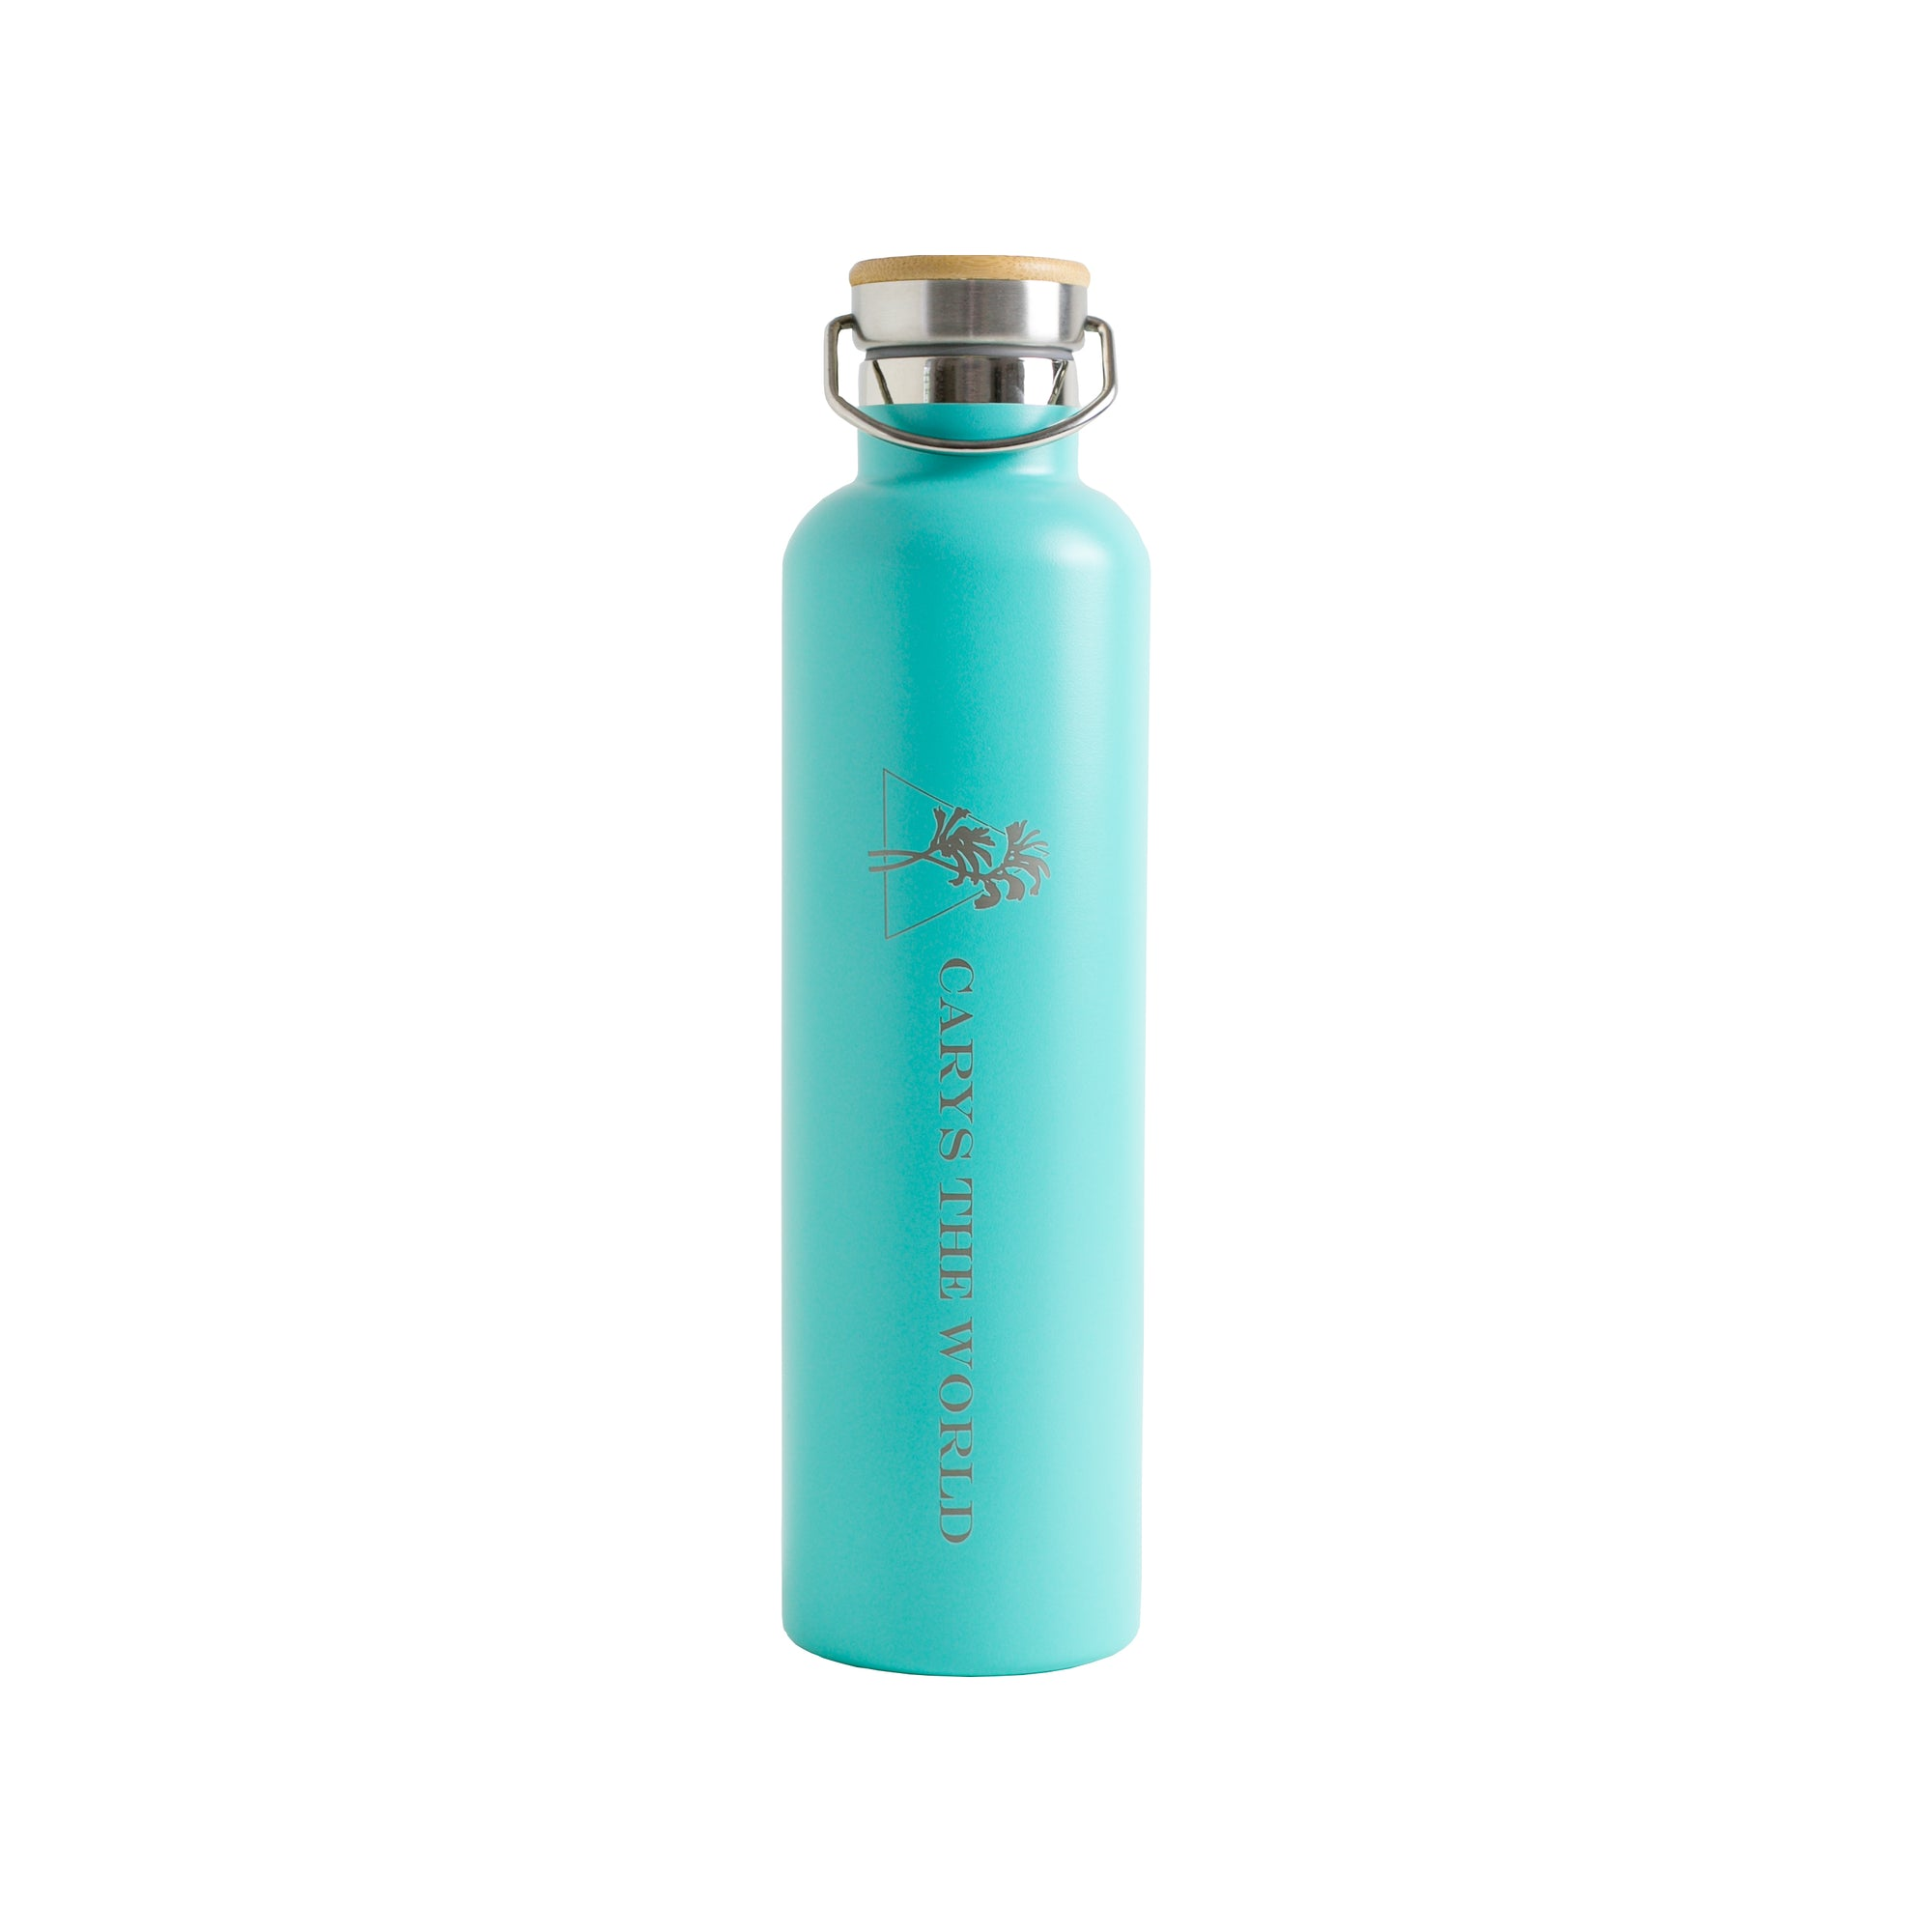 1 Litre Stainless Steel Drink Bottle Aqua - Carys The World Bamboo Bottle Brush